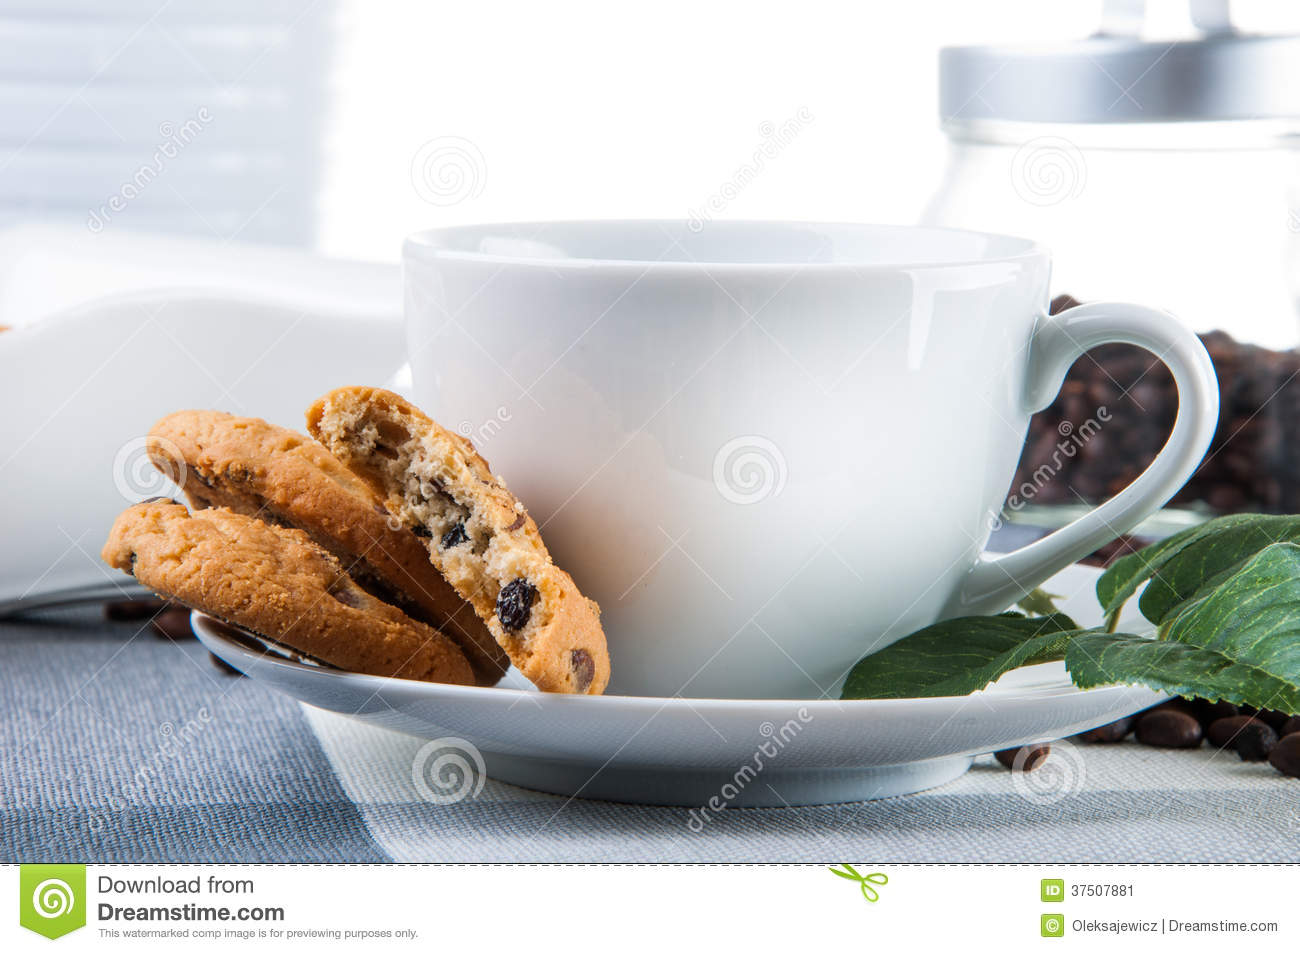 Coffee Break Theme On Kitchen Table Stock Image - Image of nature ...